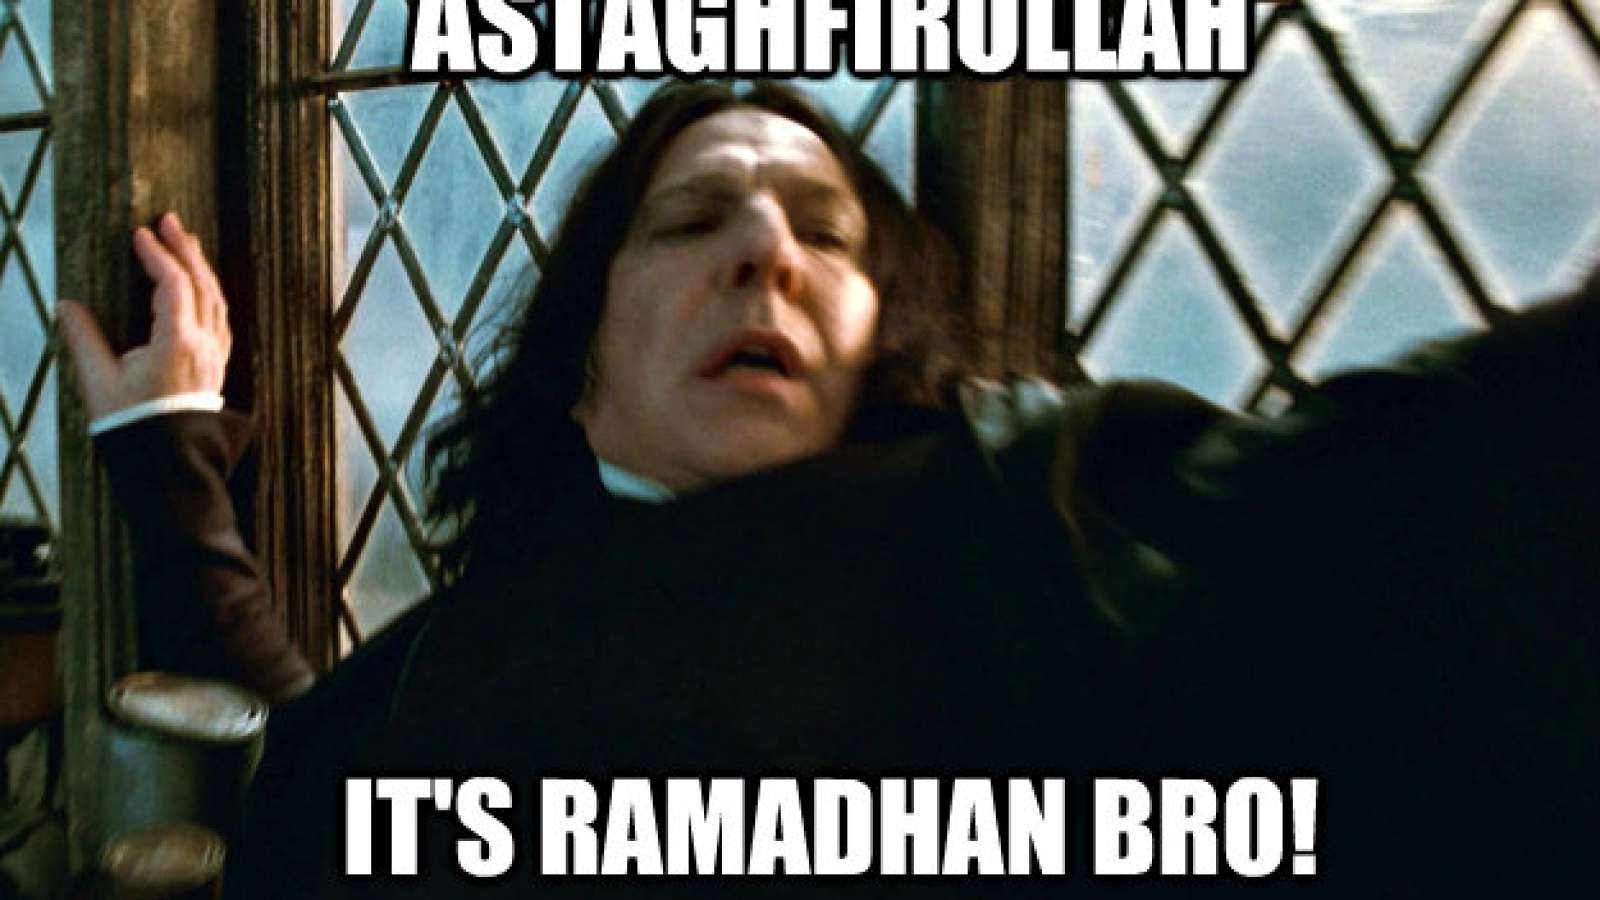 Dear muslim friends here are 10 tips to get through ramadan with